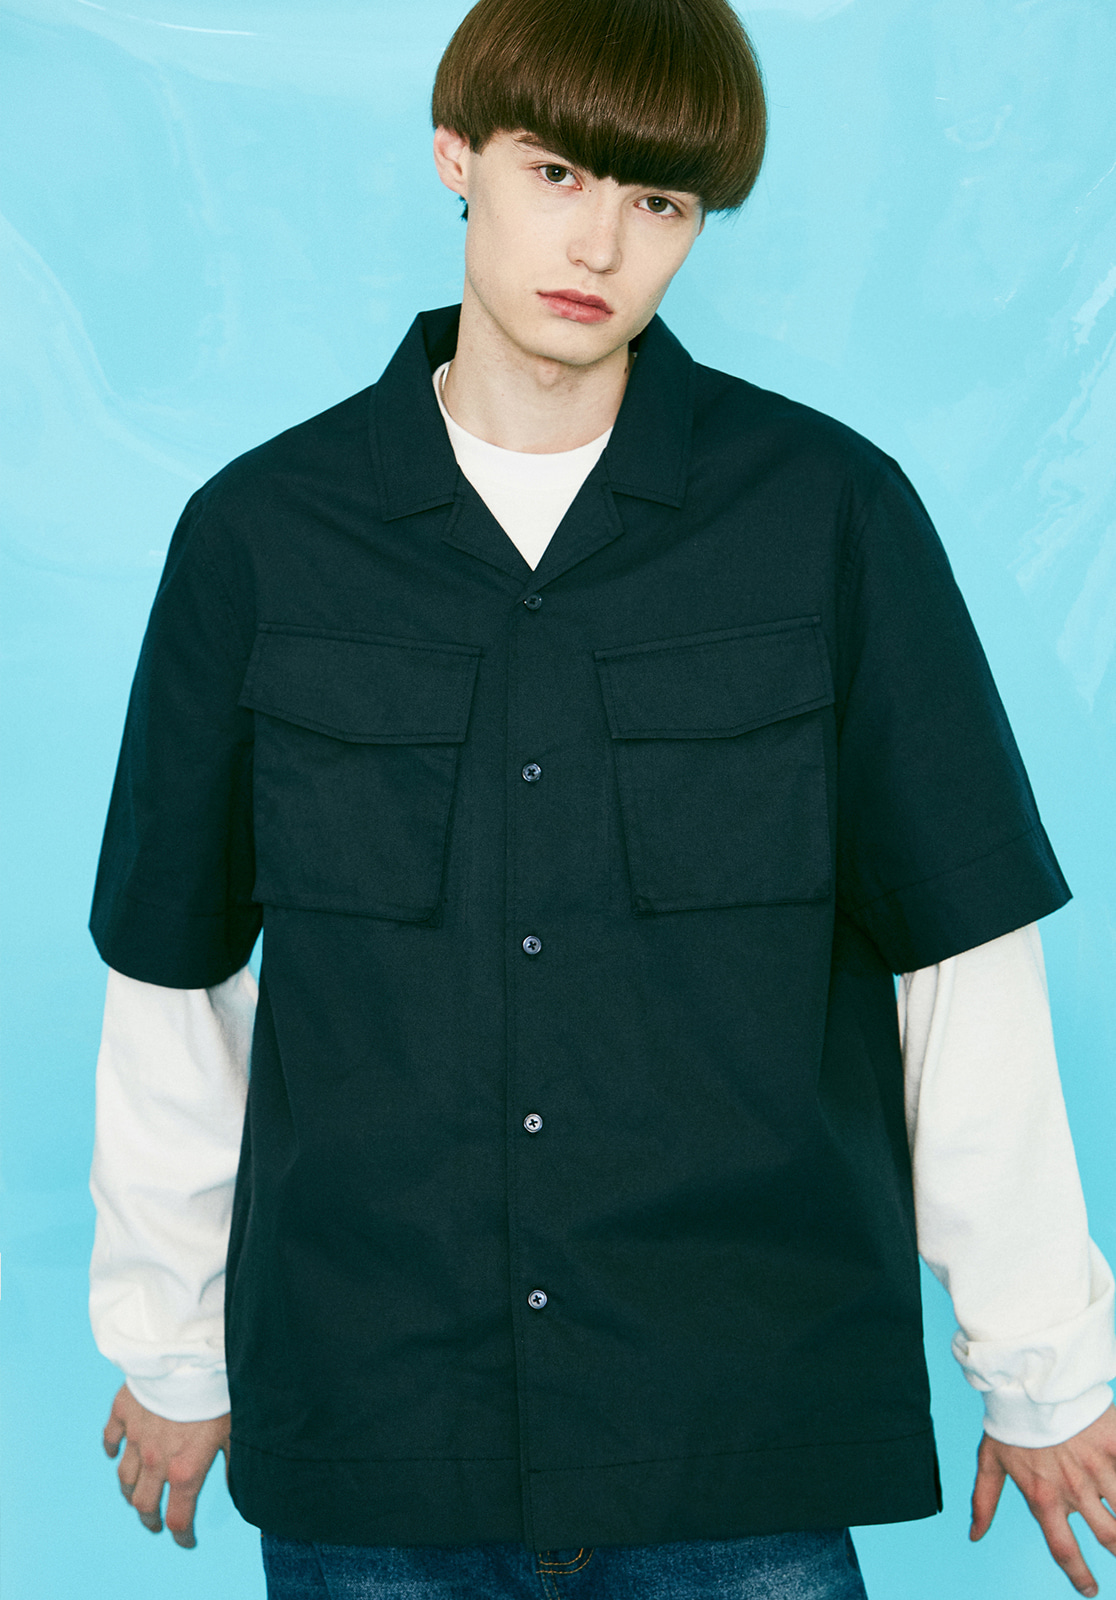 V456 TWO POCKET HALF-SHIRTSNAVY